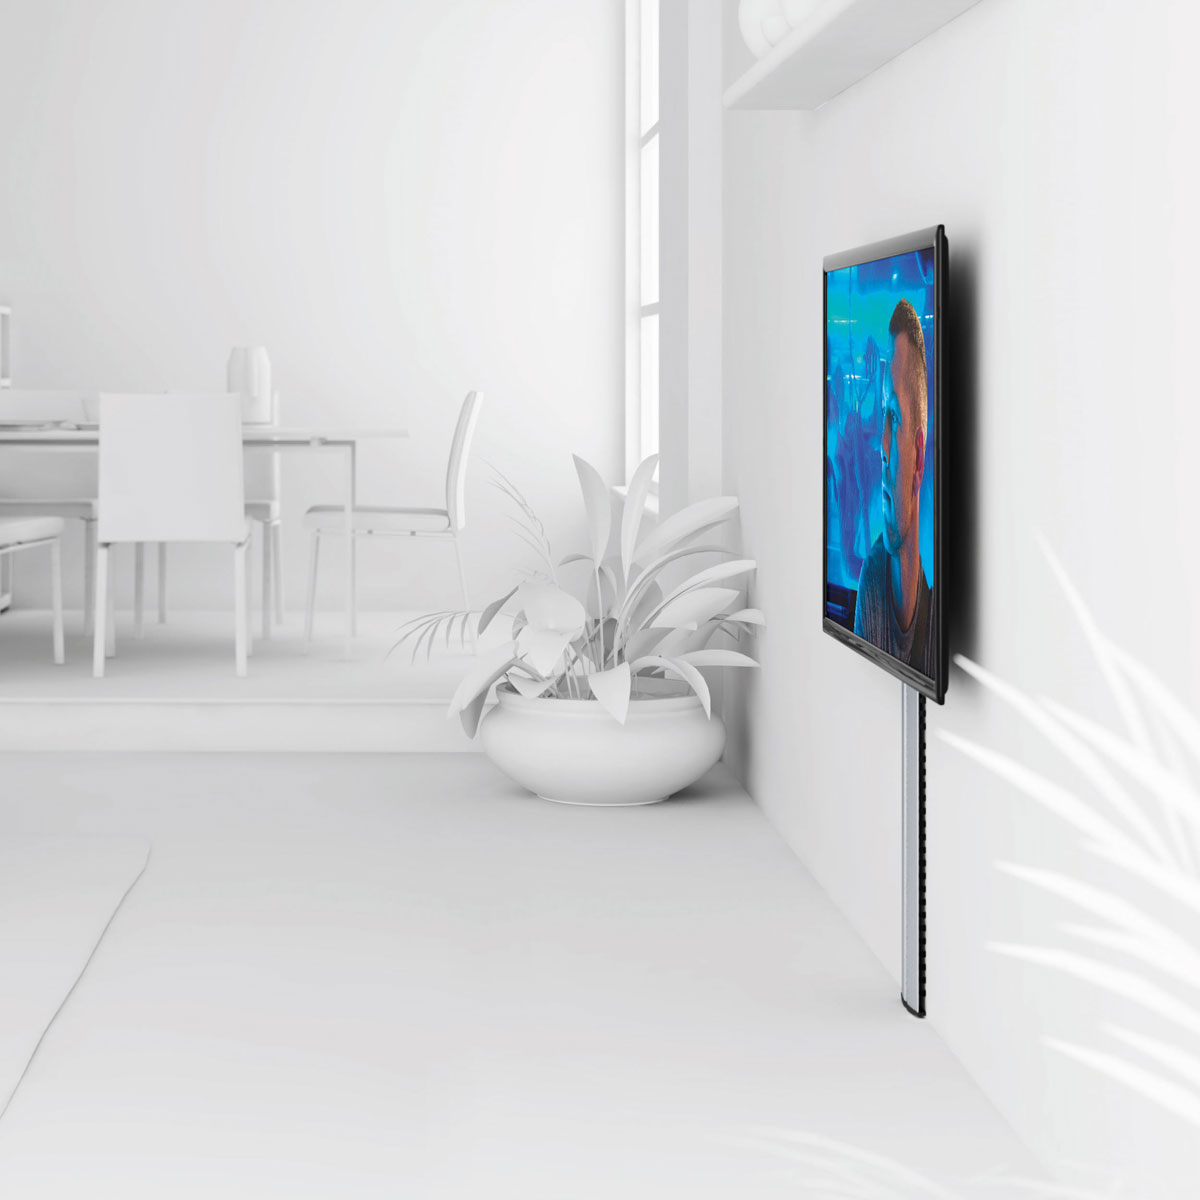 Meuble Tv 95 Cm Vogel's Cable 10l - Support Mural Tv Vogel's Sur Ldlc.com